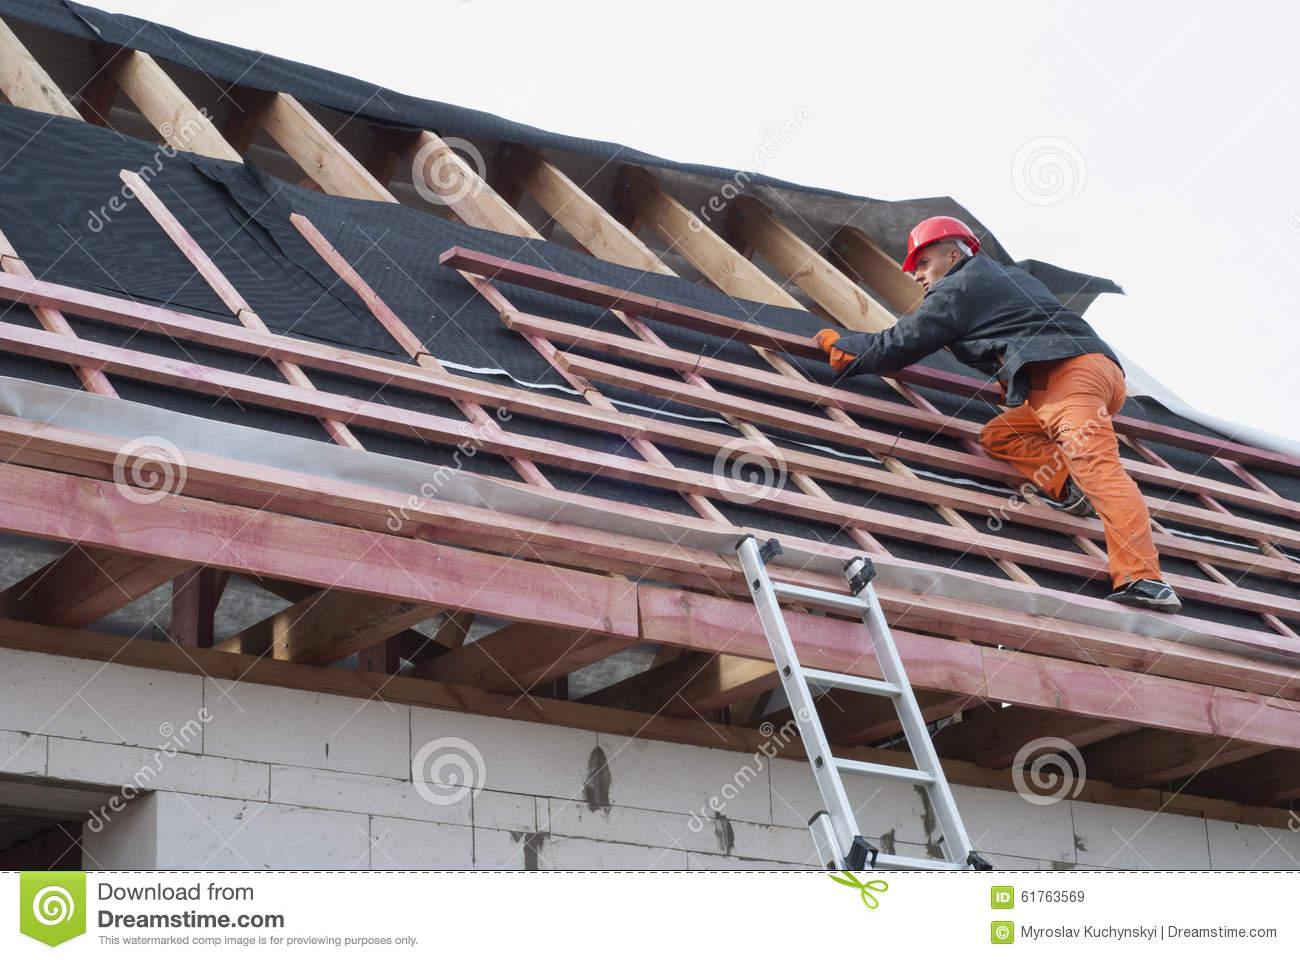 Cartoon Roofing Installation : Roofer installs a skylight on the new roof using drill